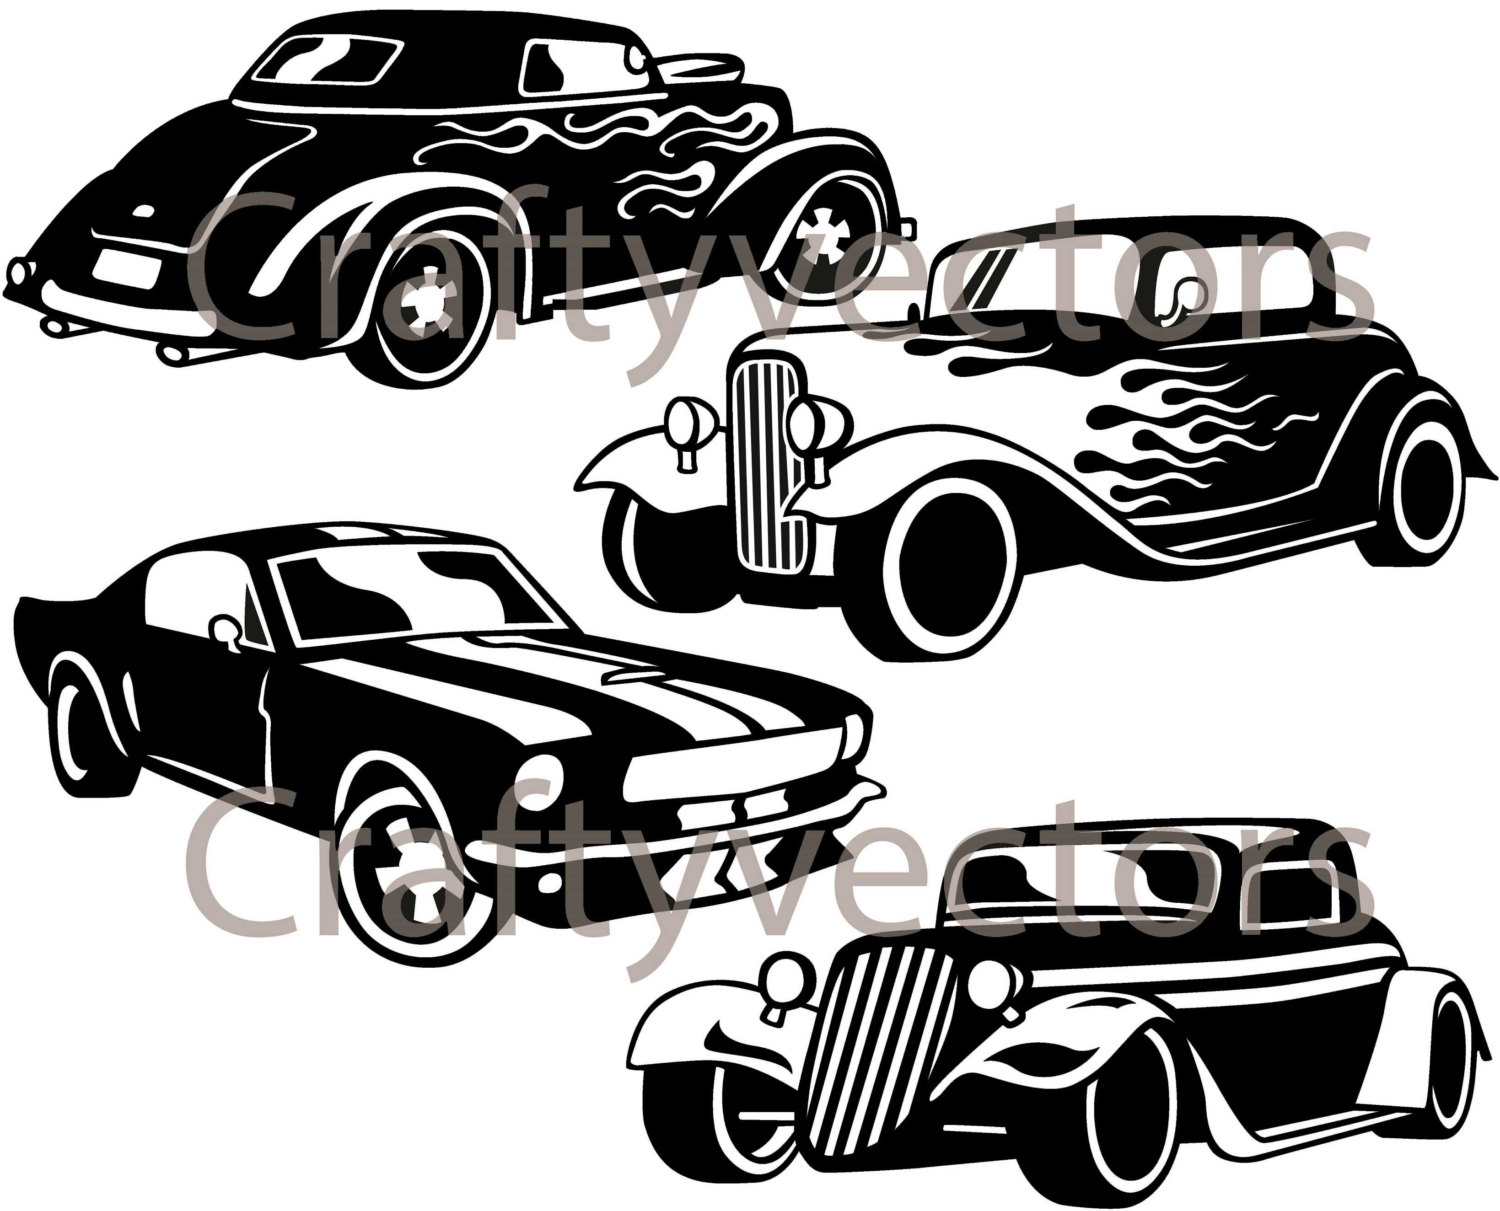 1500x1211 Hot Rod Cars Svg Vector Files